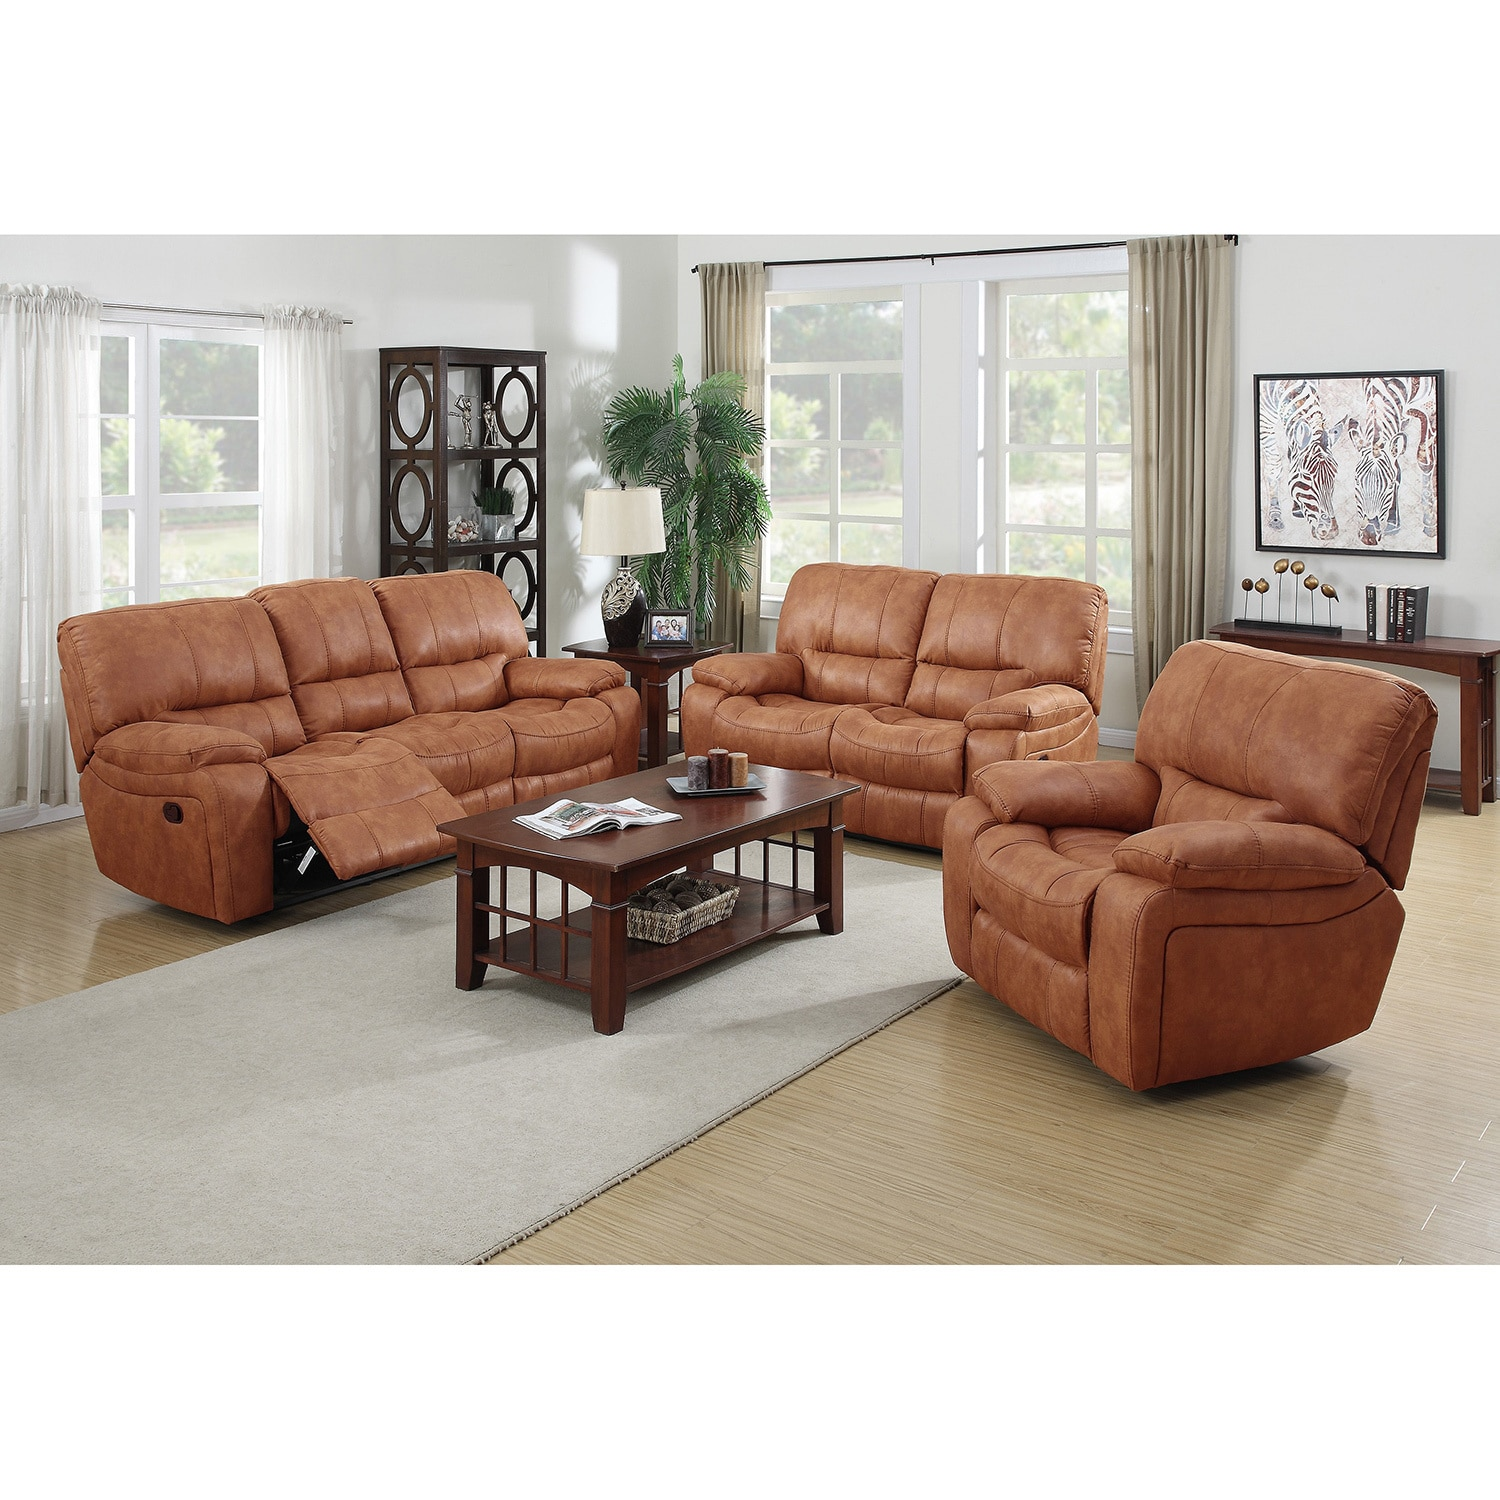 Silverado Modern Printed Leather and Fabric Reclining